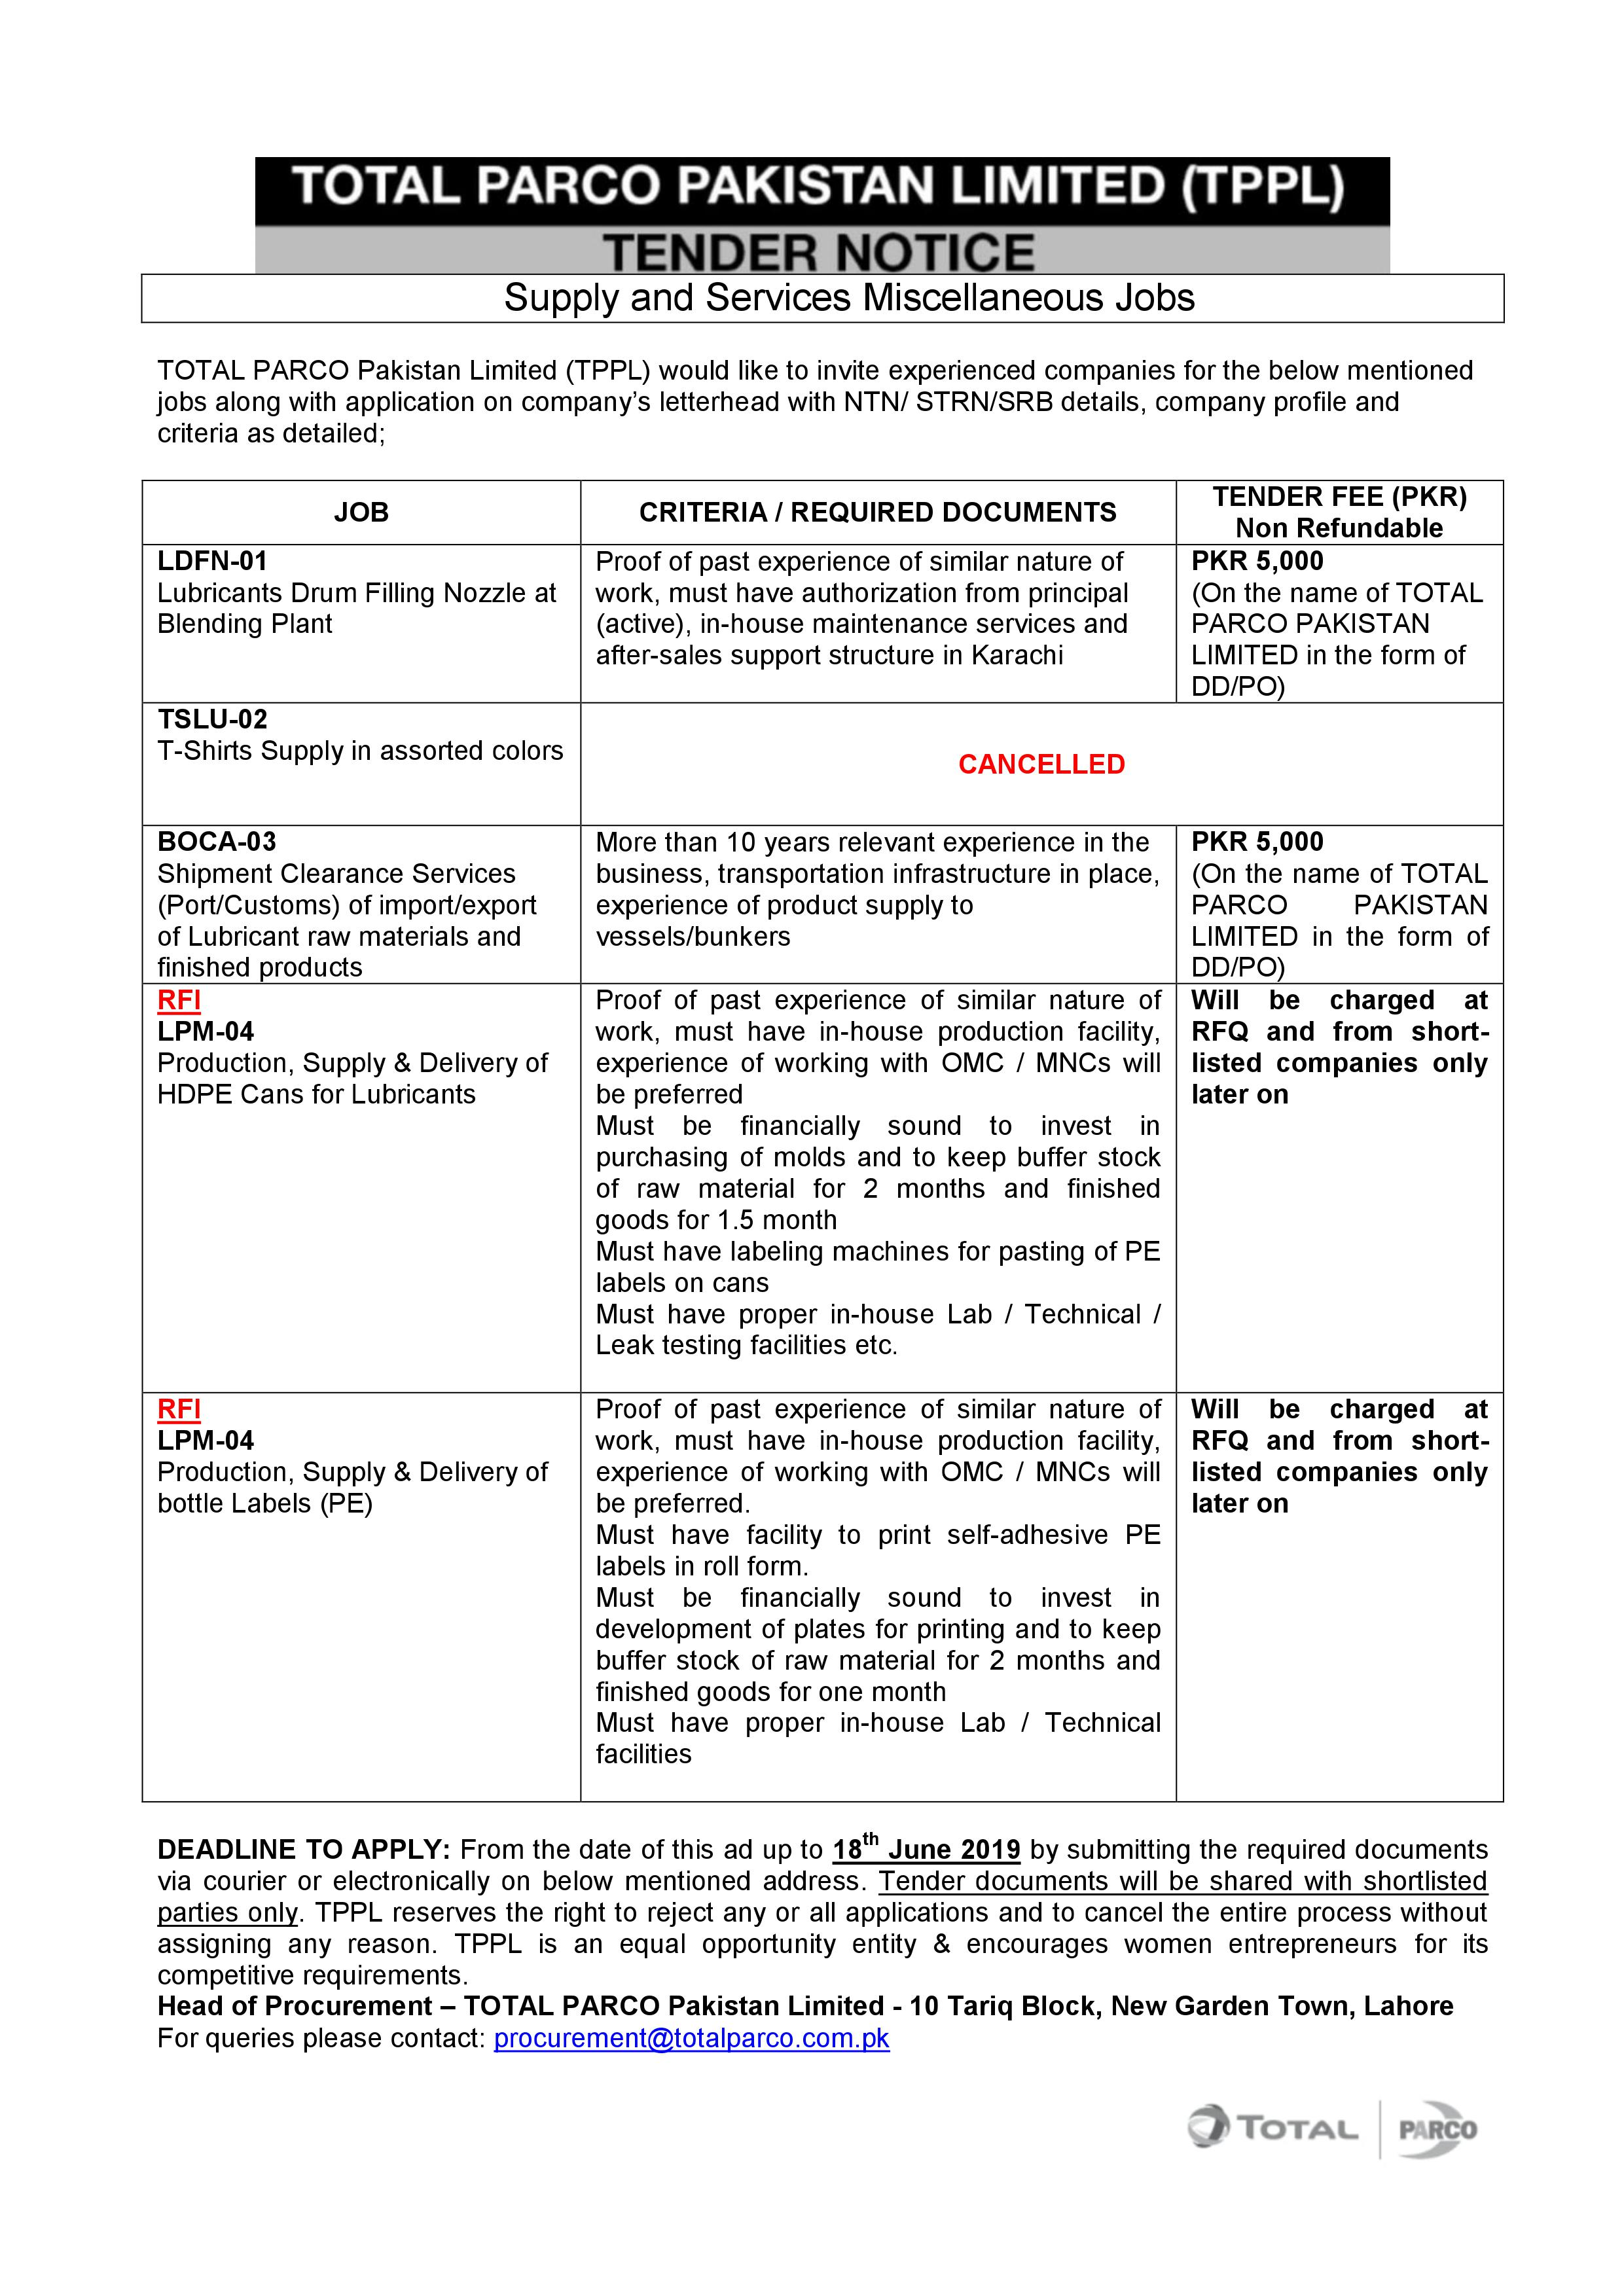 Tender Notice - Miscellaneous Jobs Supply & Services | Total